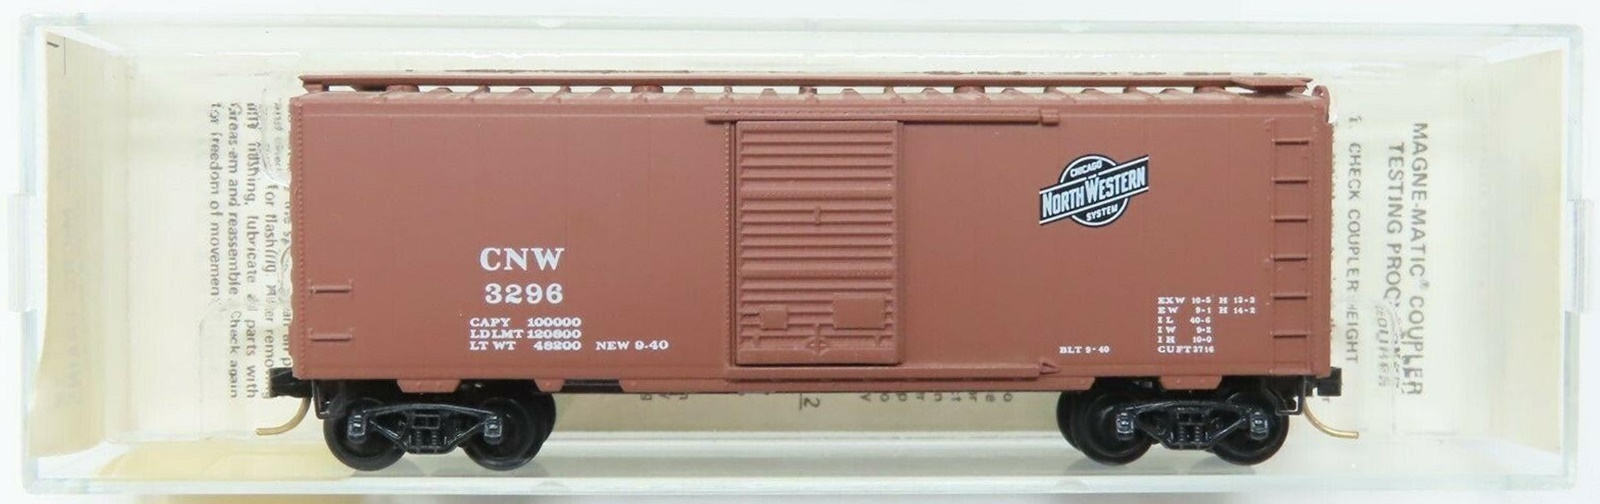 N Scale - Micro-Trains - 20250 - Boxcar, 40 Foot, PS-1 - Chicago & North Western - 3296